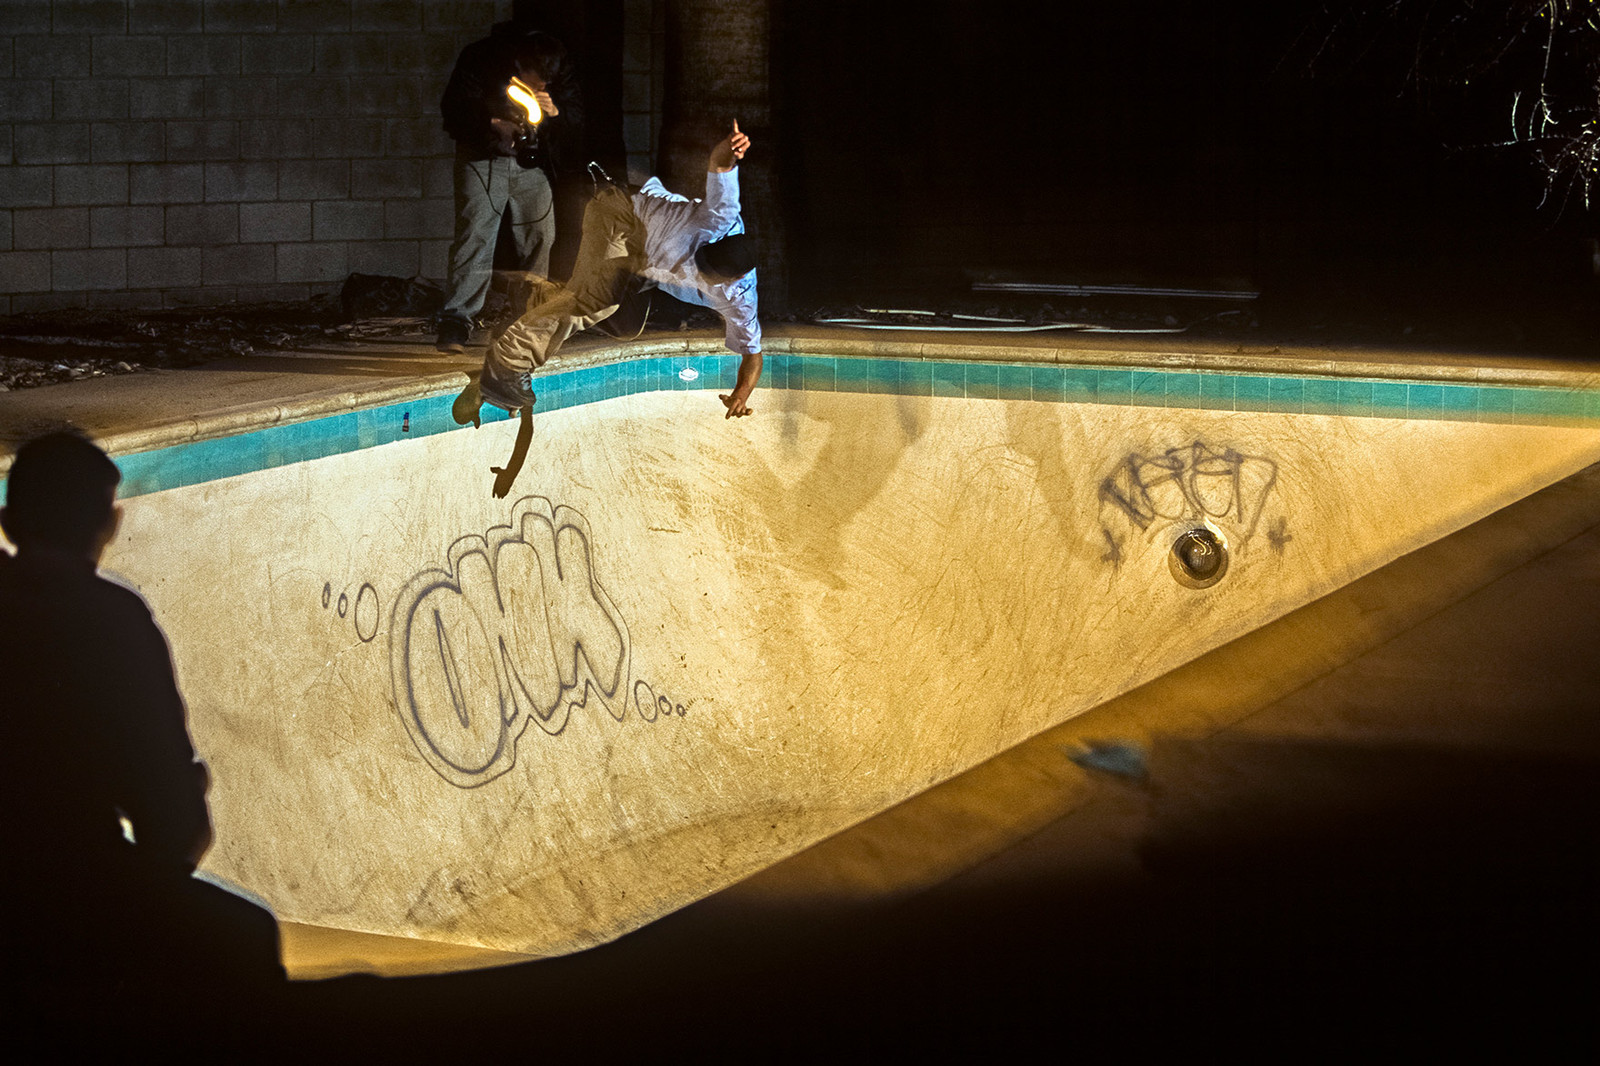 John Cardiel, Backside Smith, Phoenix, Arizona 2000